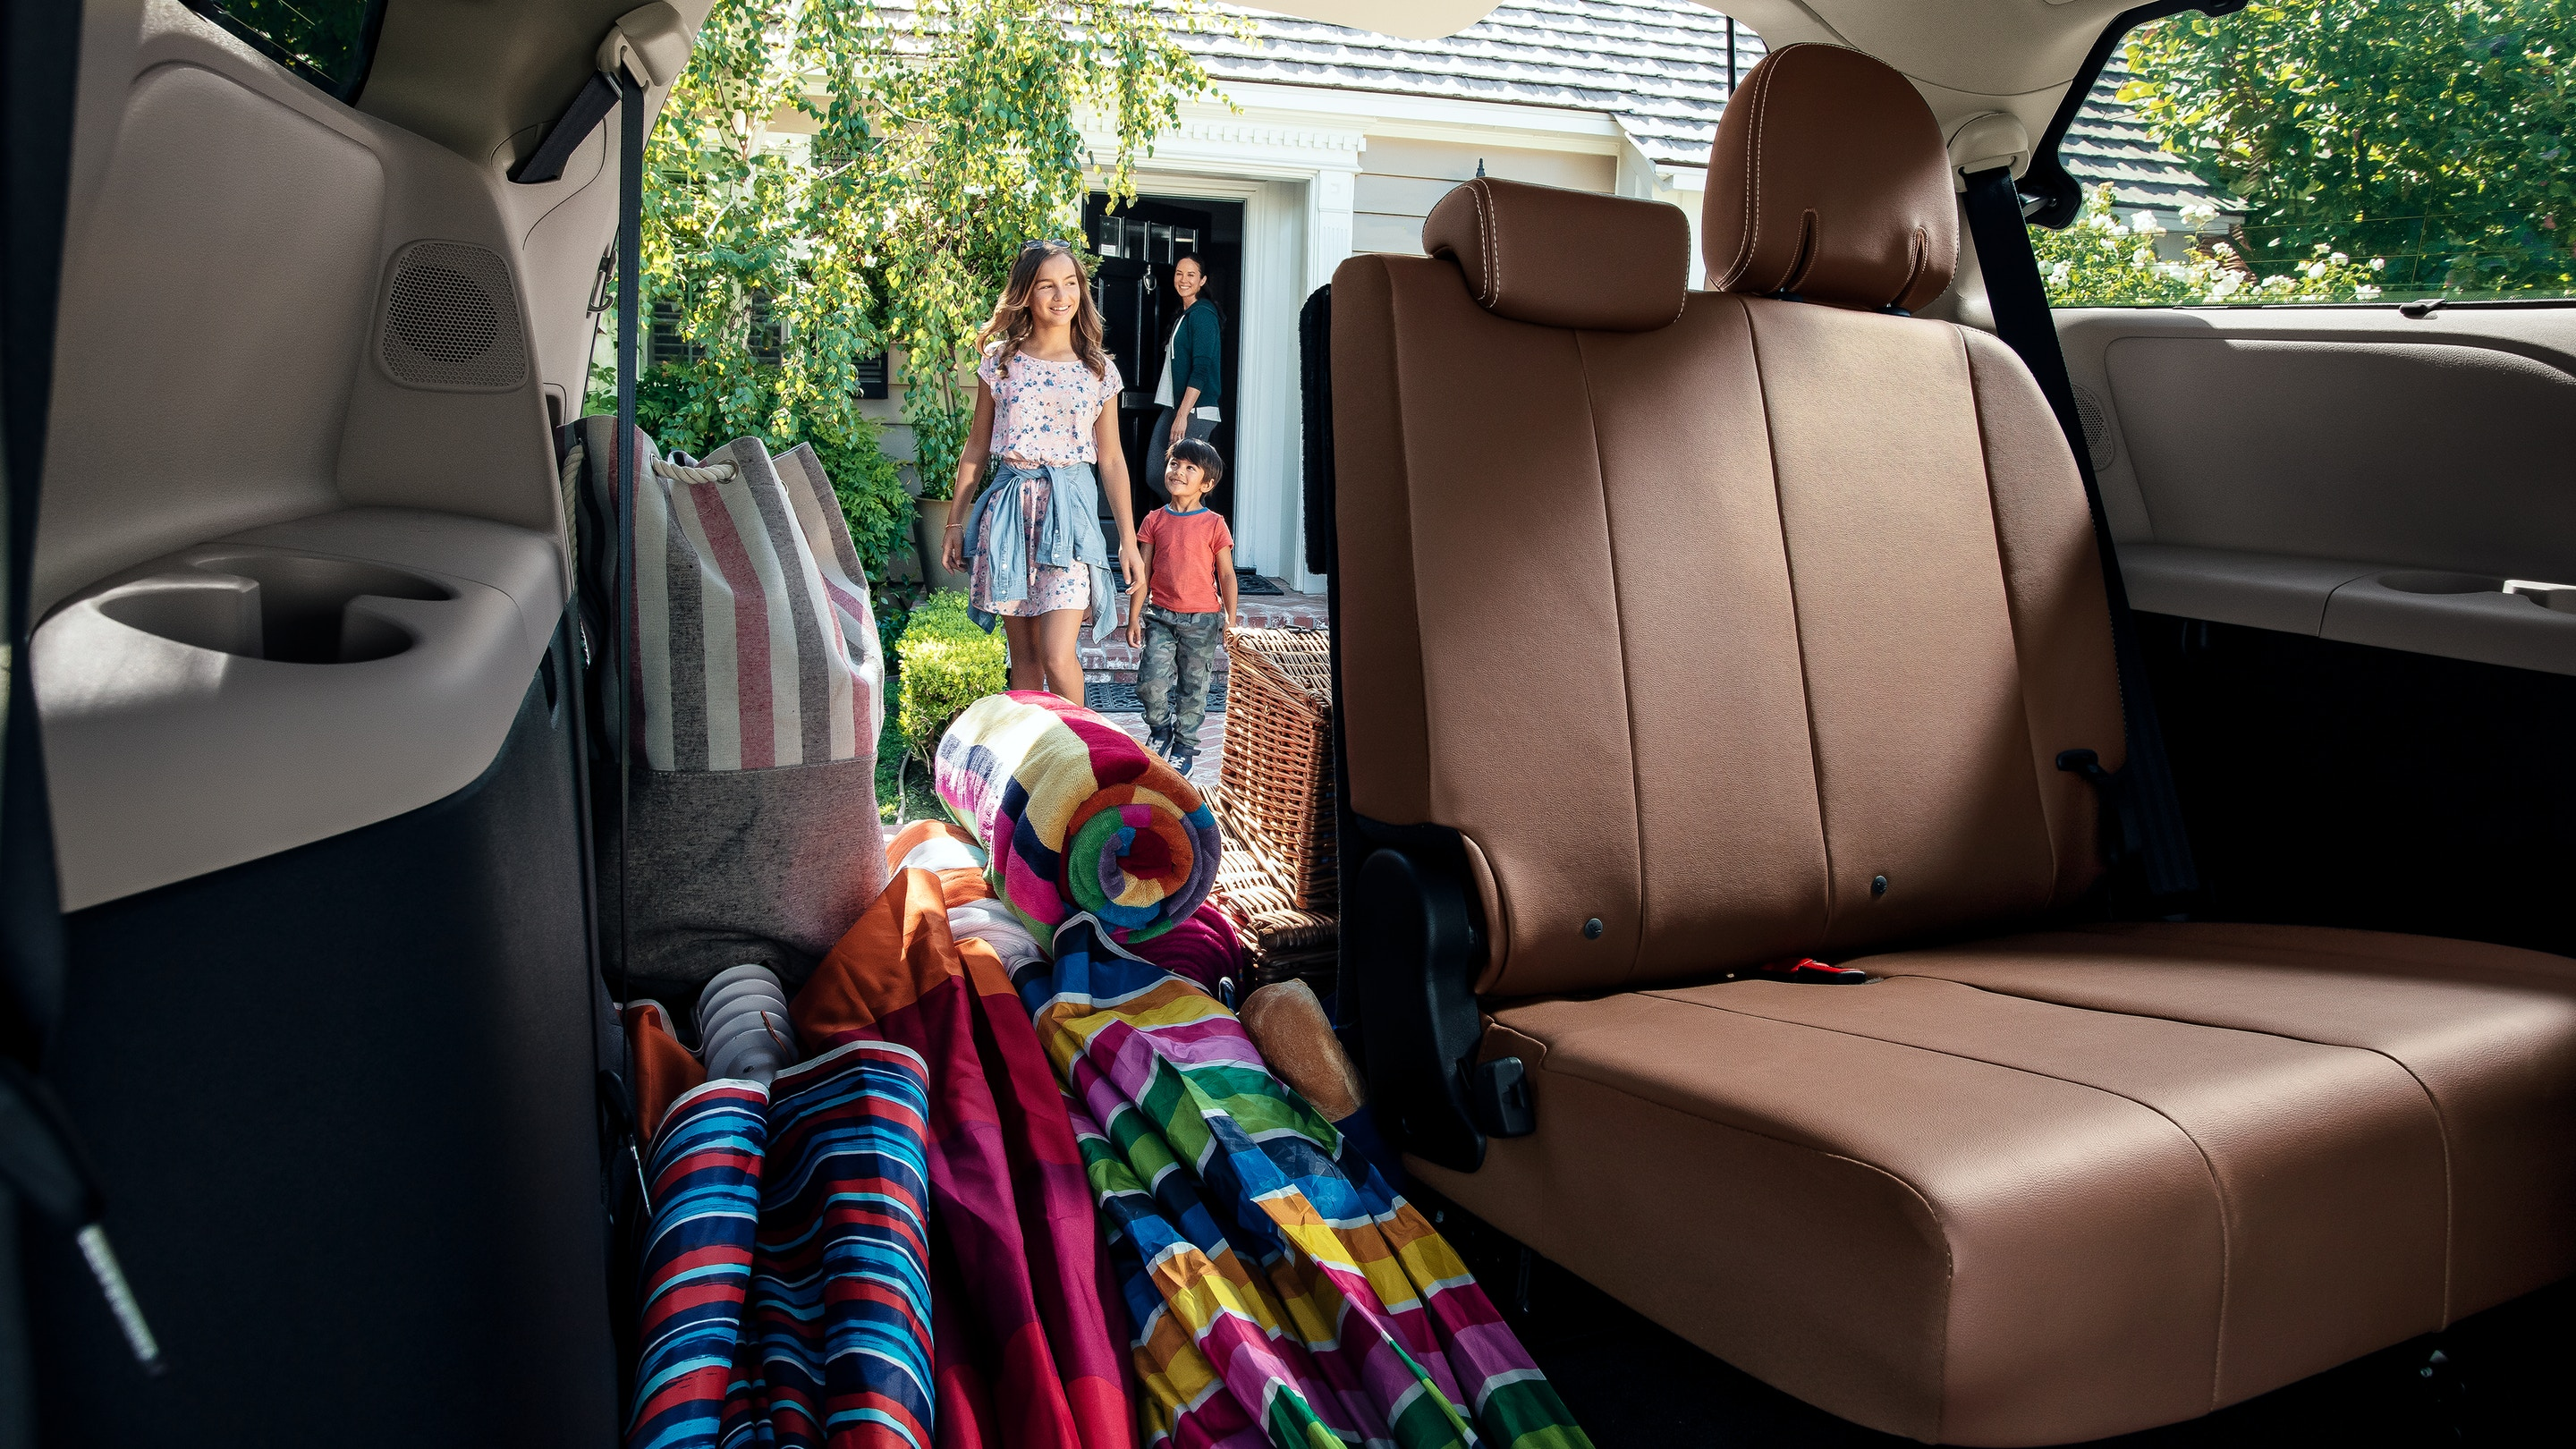 Plenty of Space in the Sienna!